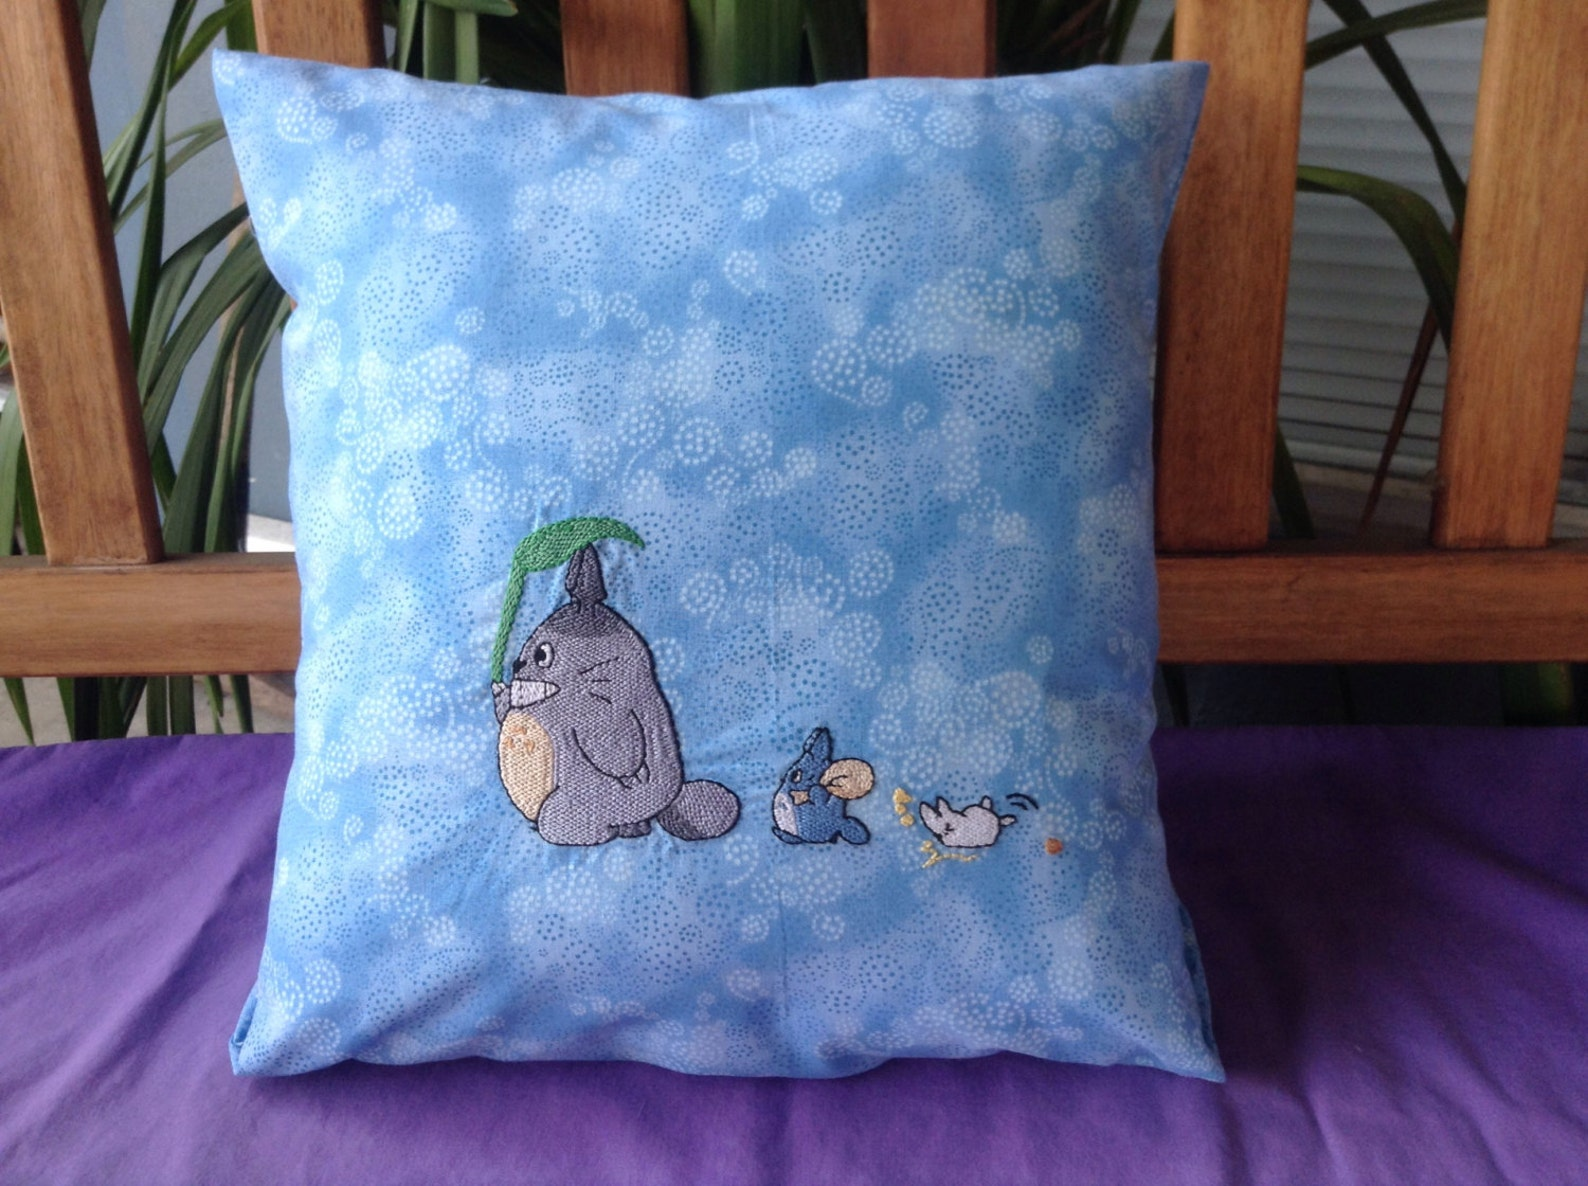 Our Neighbor Totoro, Totoro and Friends, Studio Ghibli homemade embroidered pillow